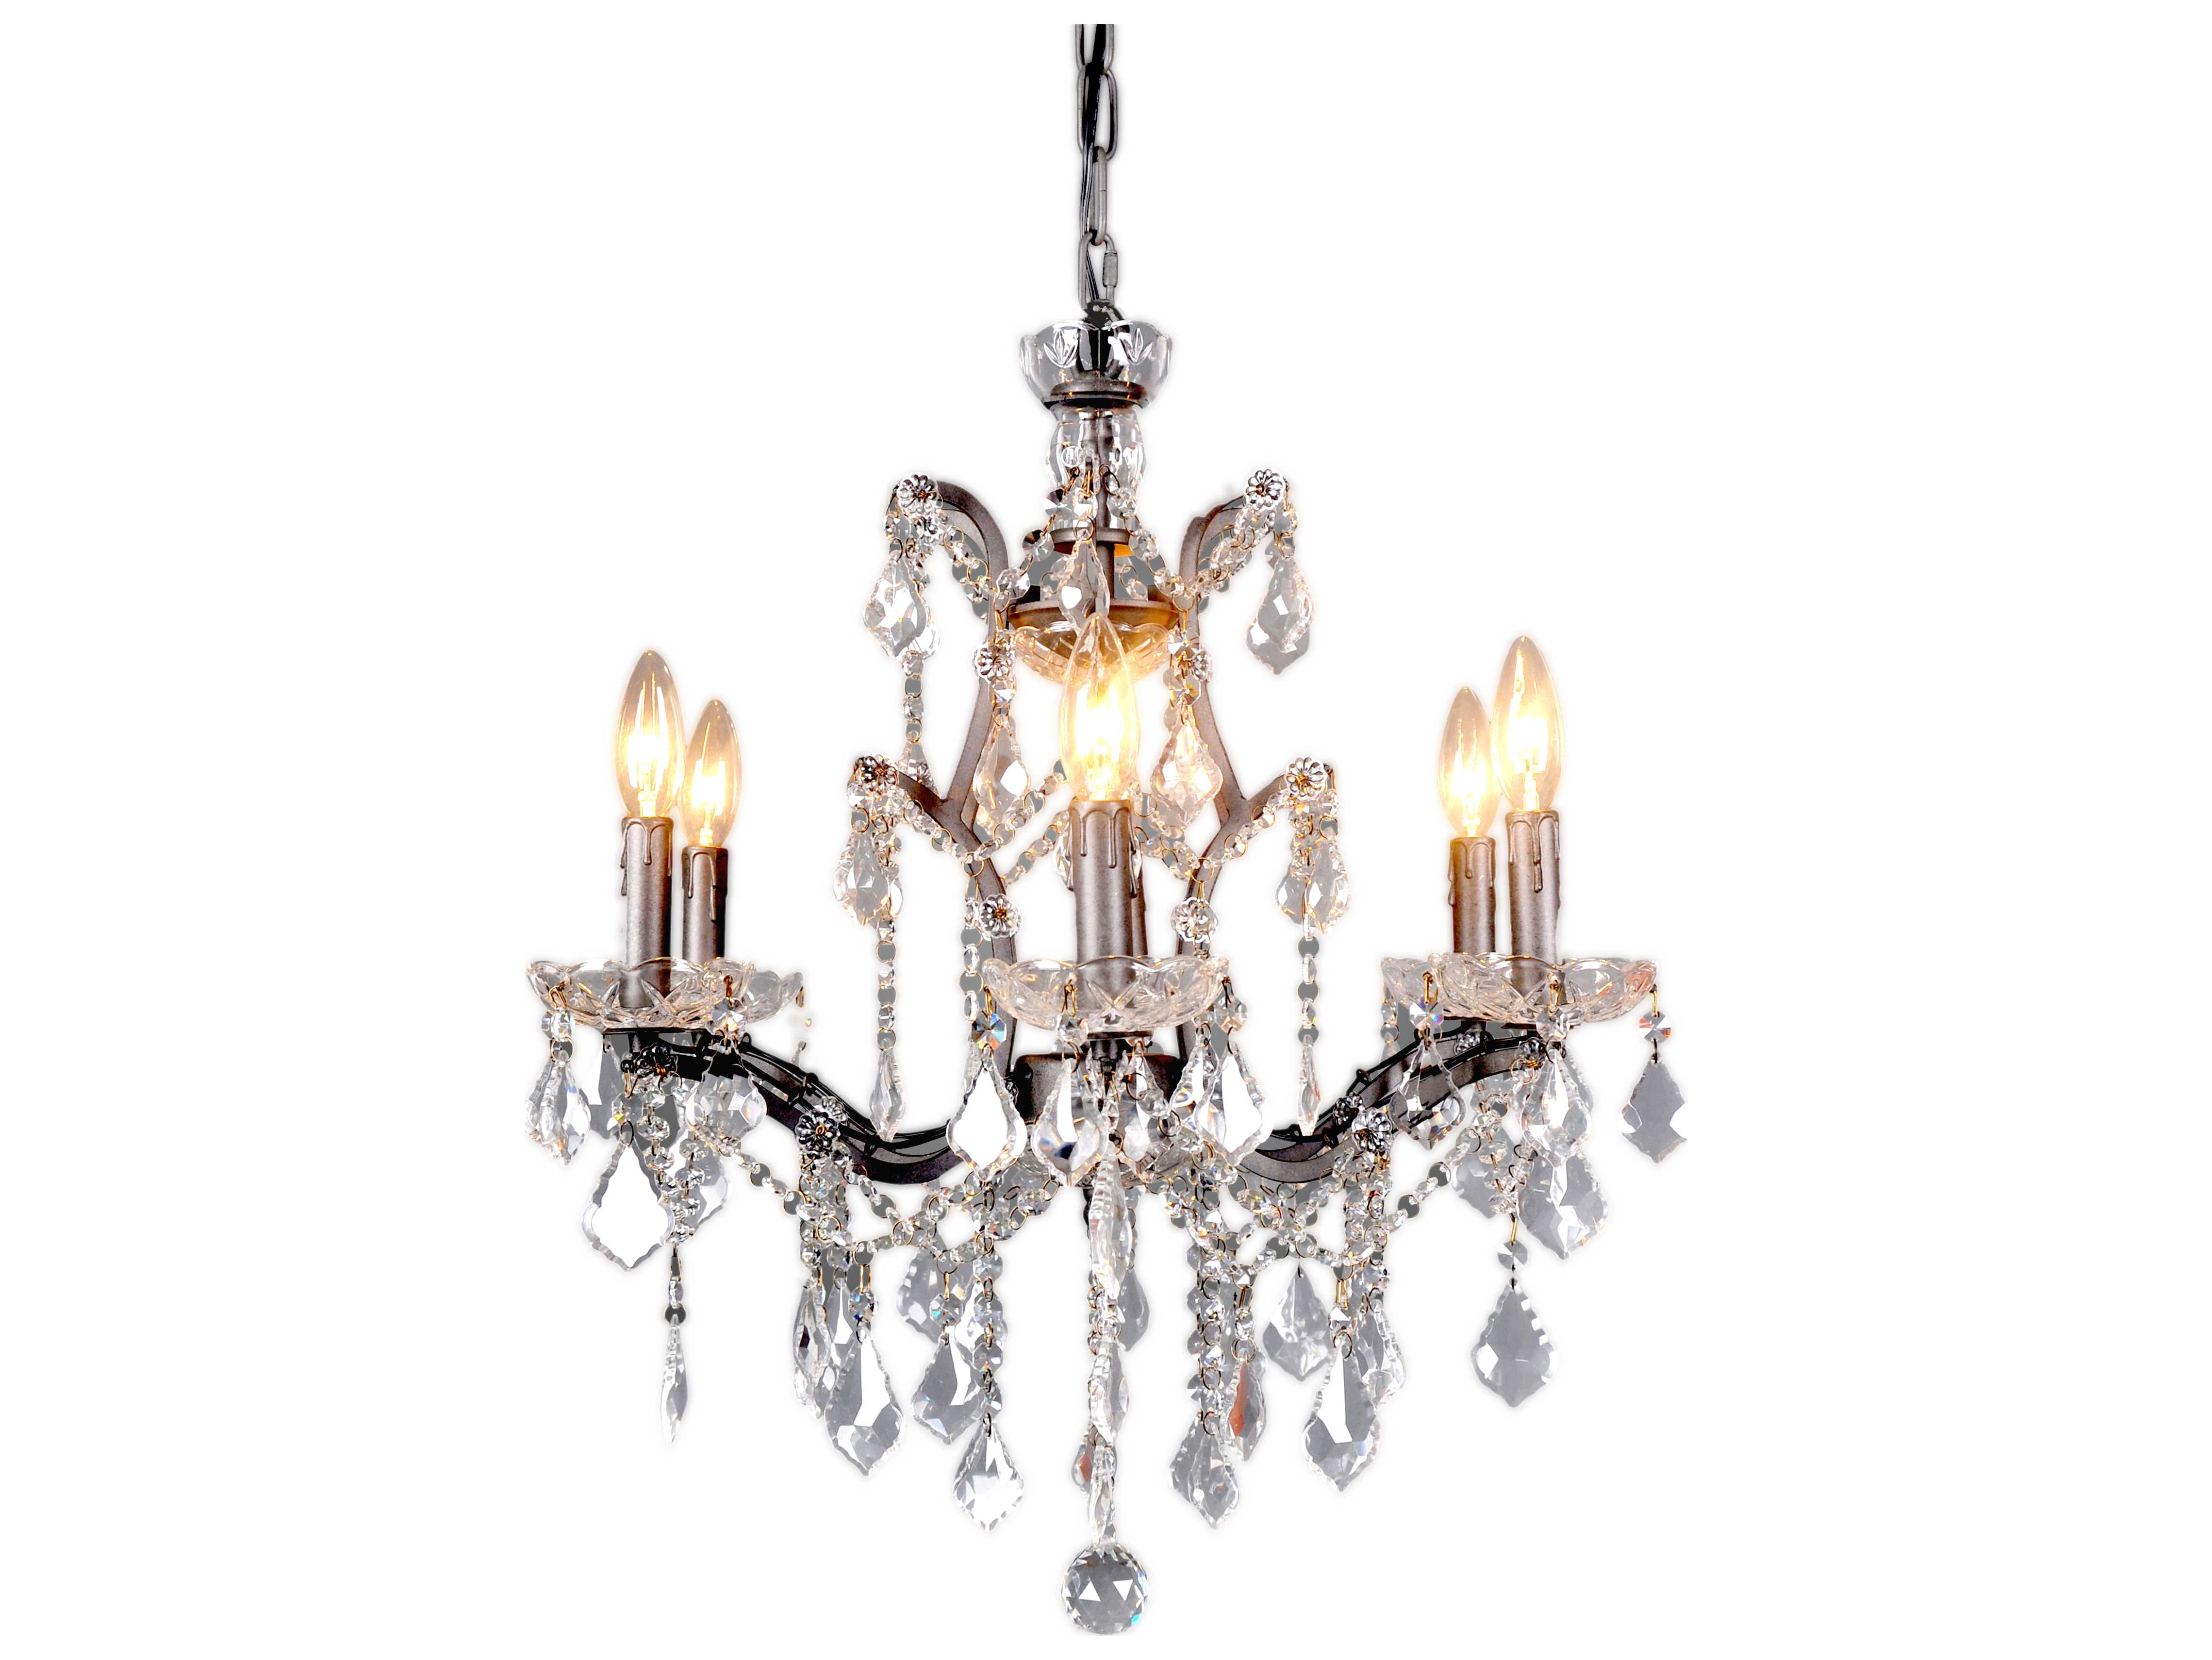 Moe 39 S Home Collection Luisa Six Light 21 39 39 Wide Chinese Crystal Chandelier Merm101417